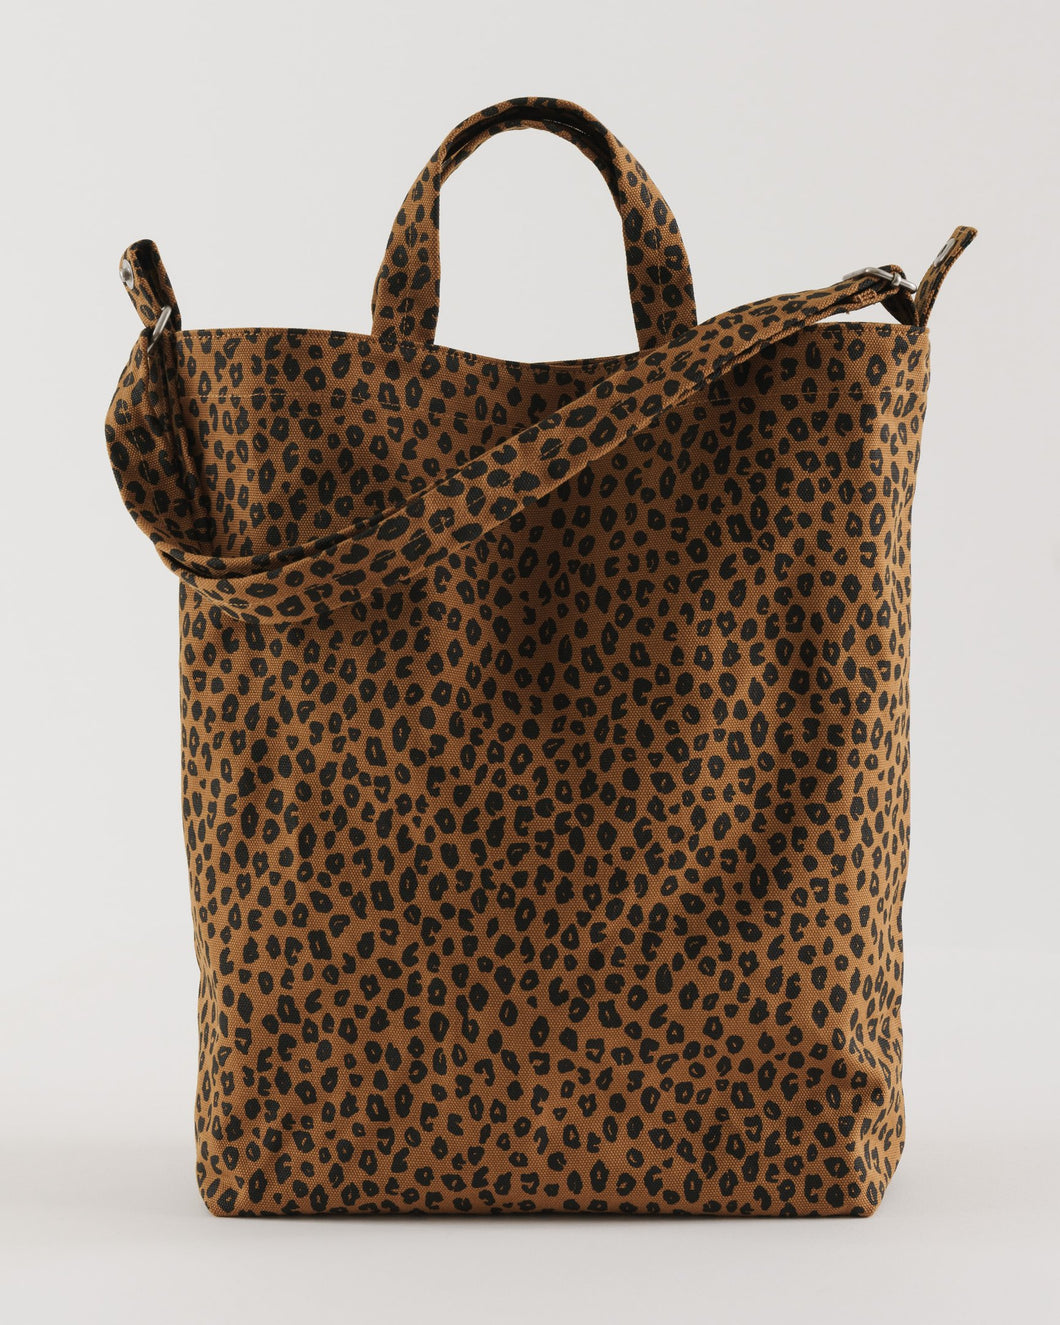 Duck Bag - Nutmeg Leopard